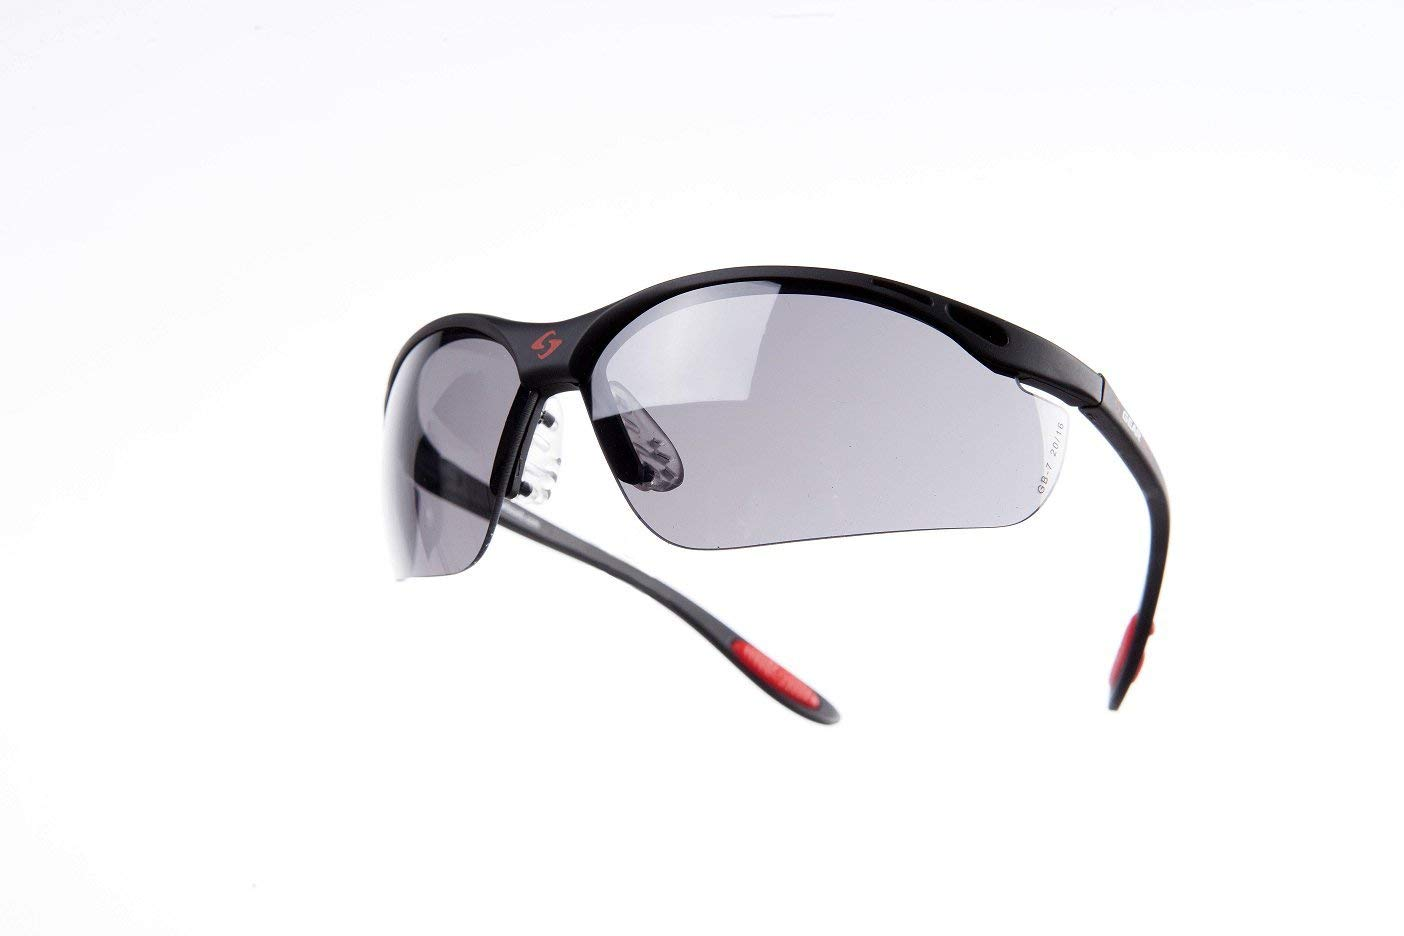 Gearbox Vision Eyewear B00M39F2LS Red  Red|Clear, ユアサチョウ e1a4d715